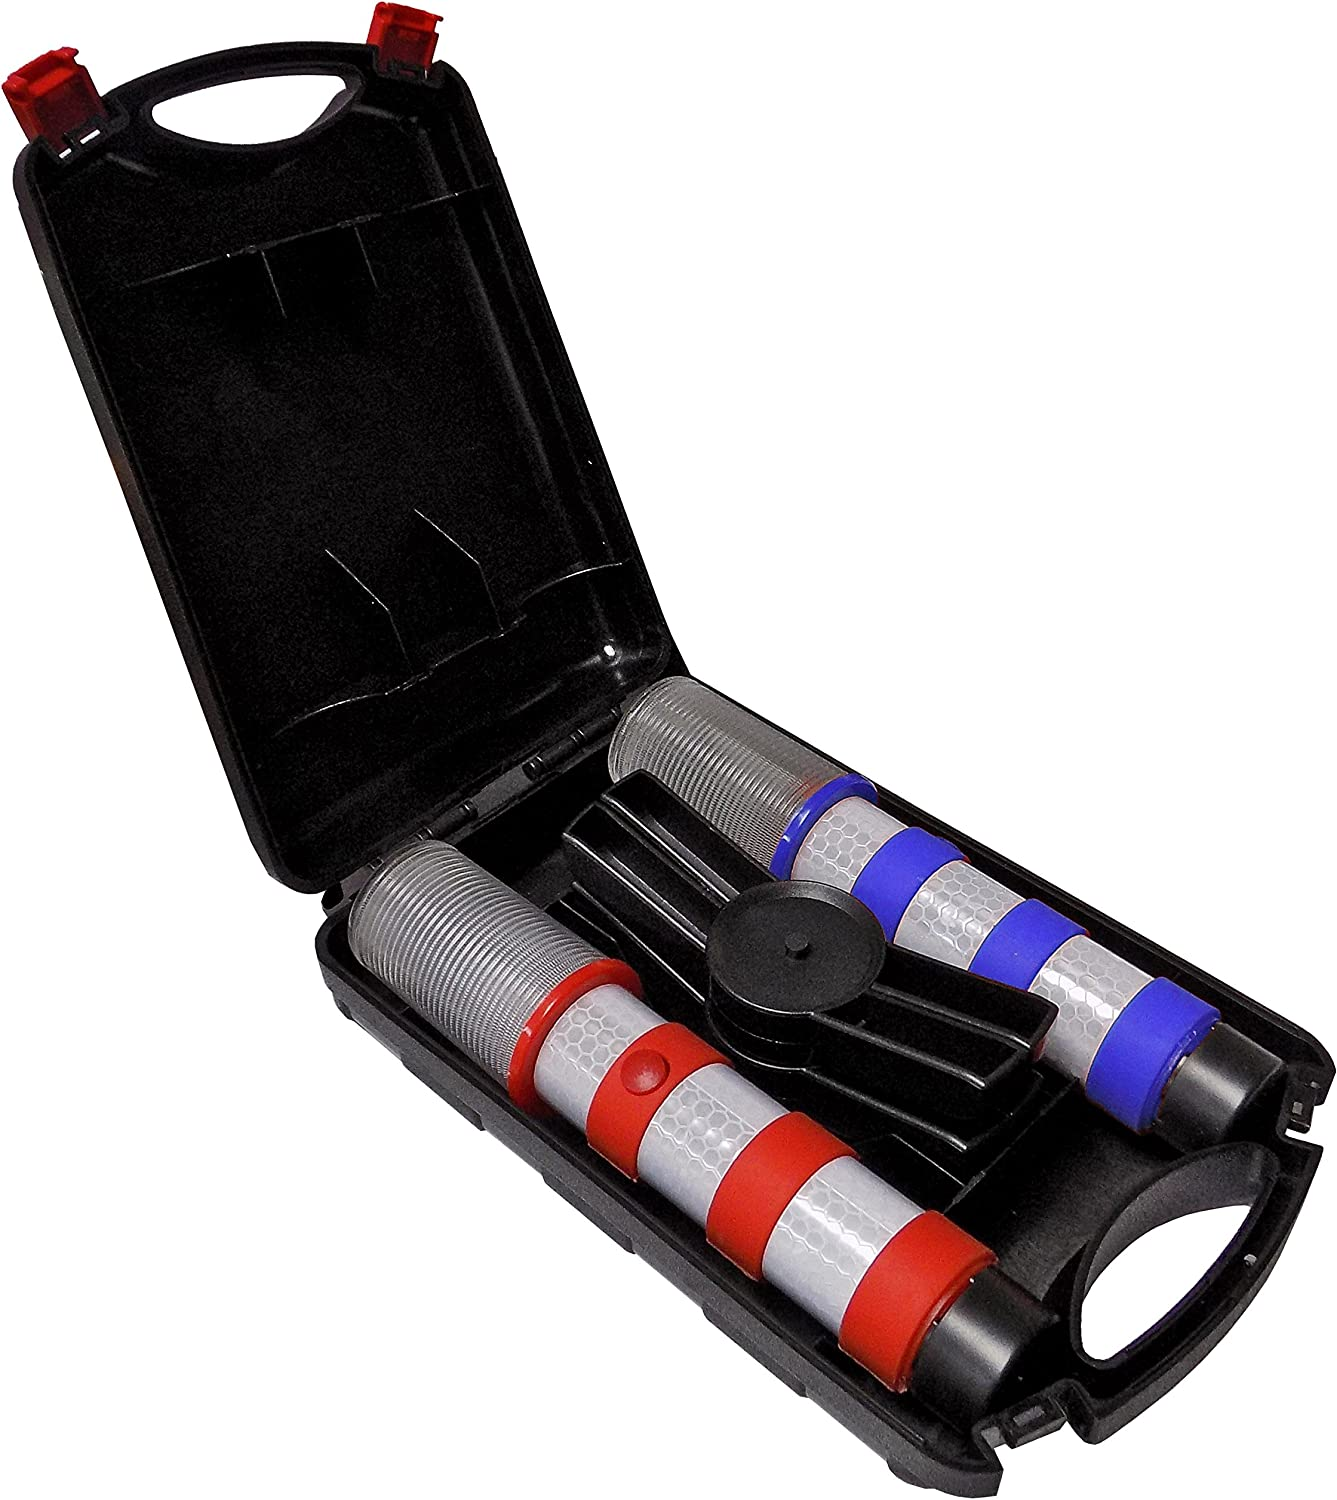 Red + Blue Electriduct Road Emergency Beacon LED Flare KIT with Storage Case